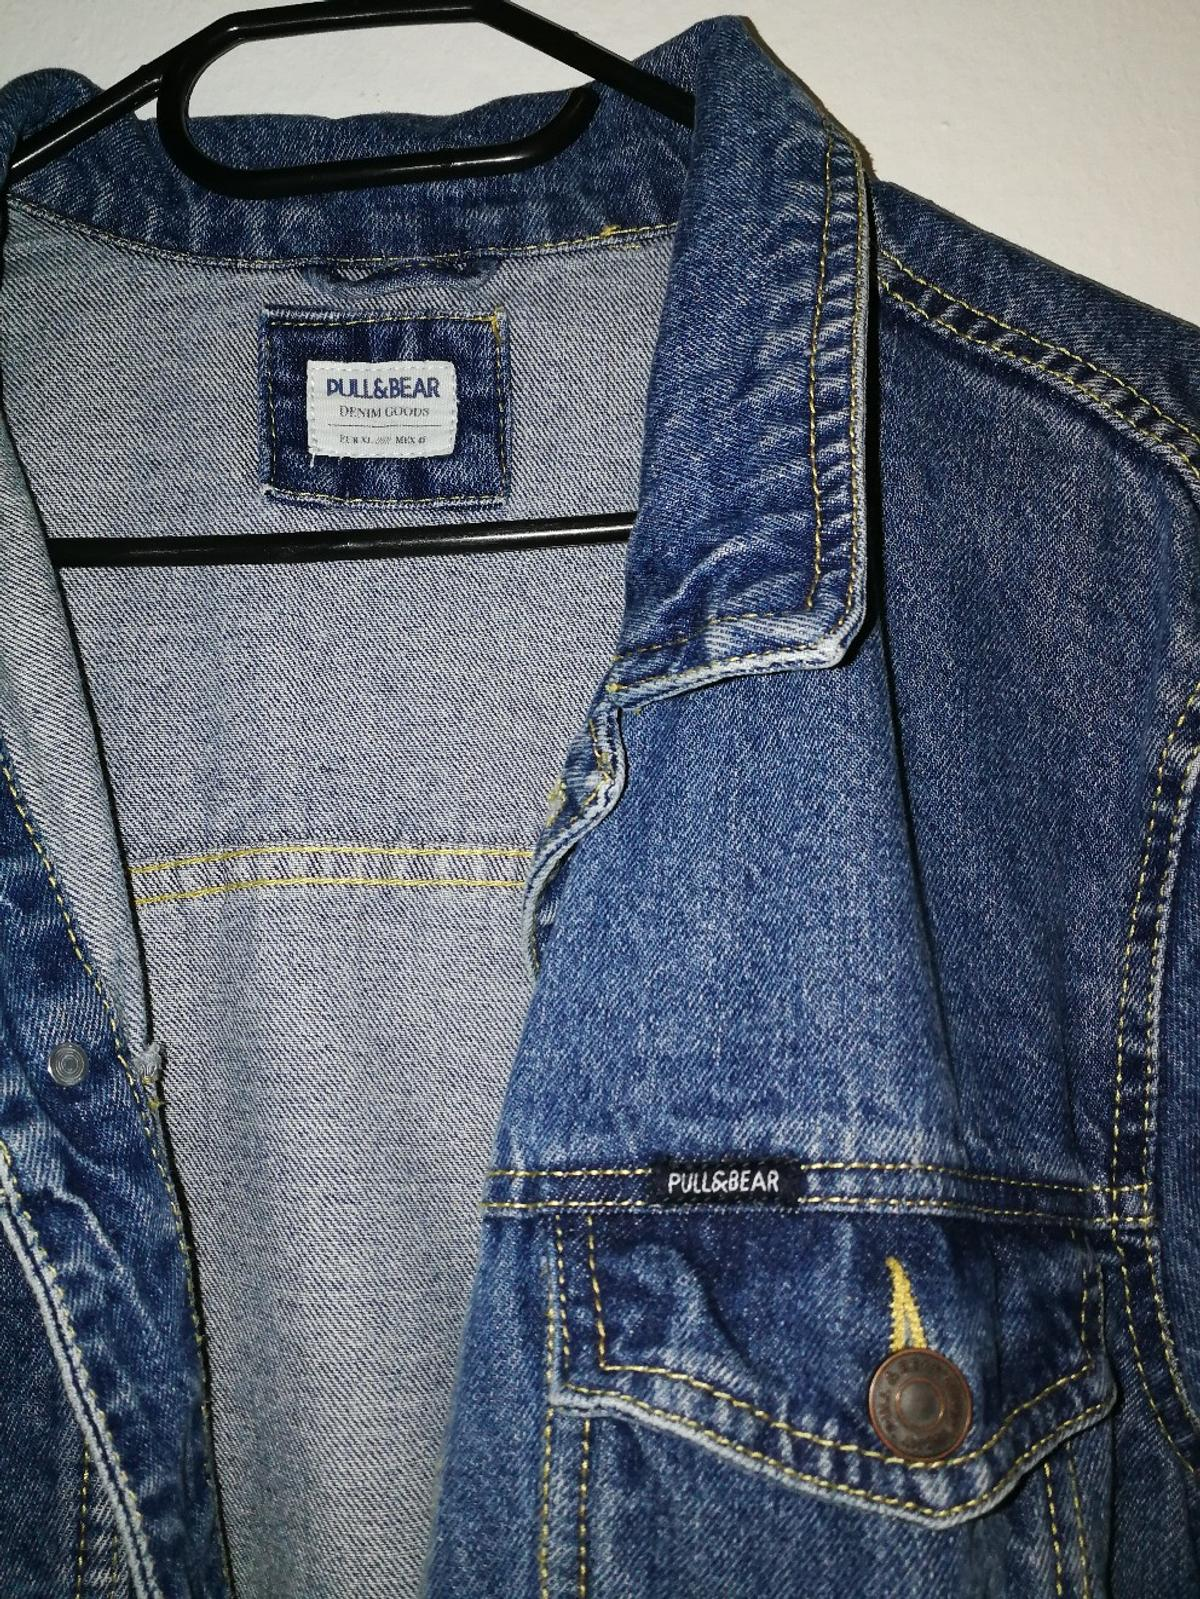 info for 240c3 8d656 Jeans jacke Pull and Bear